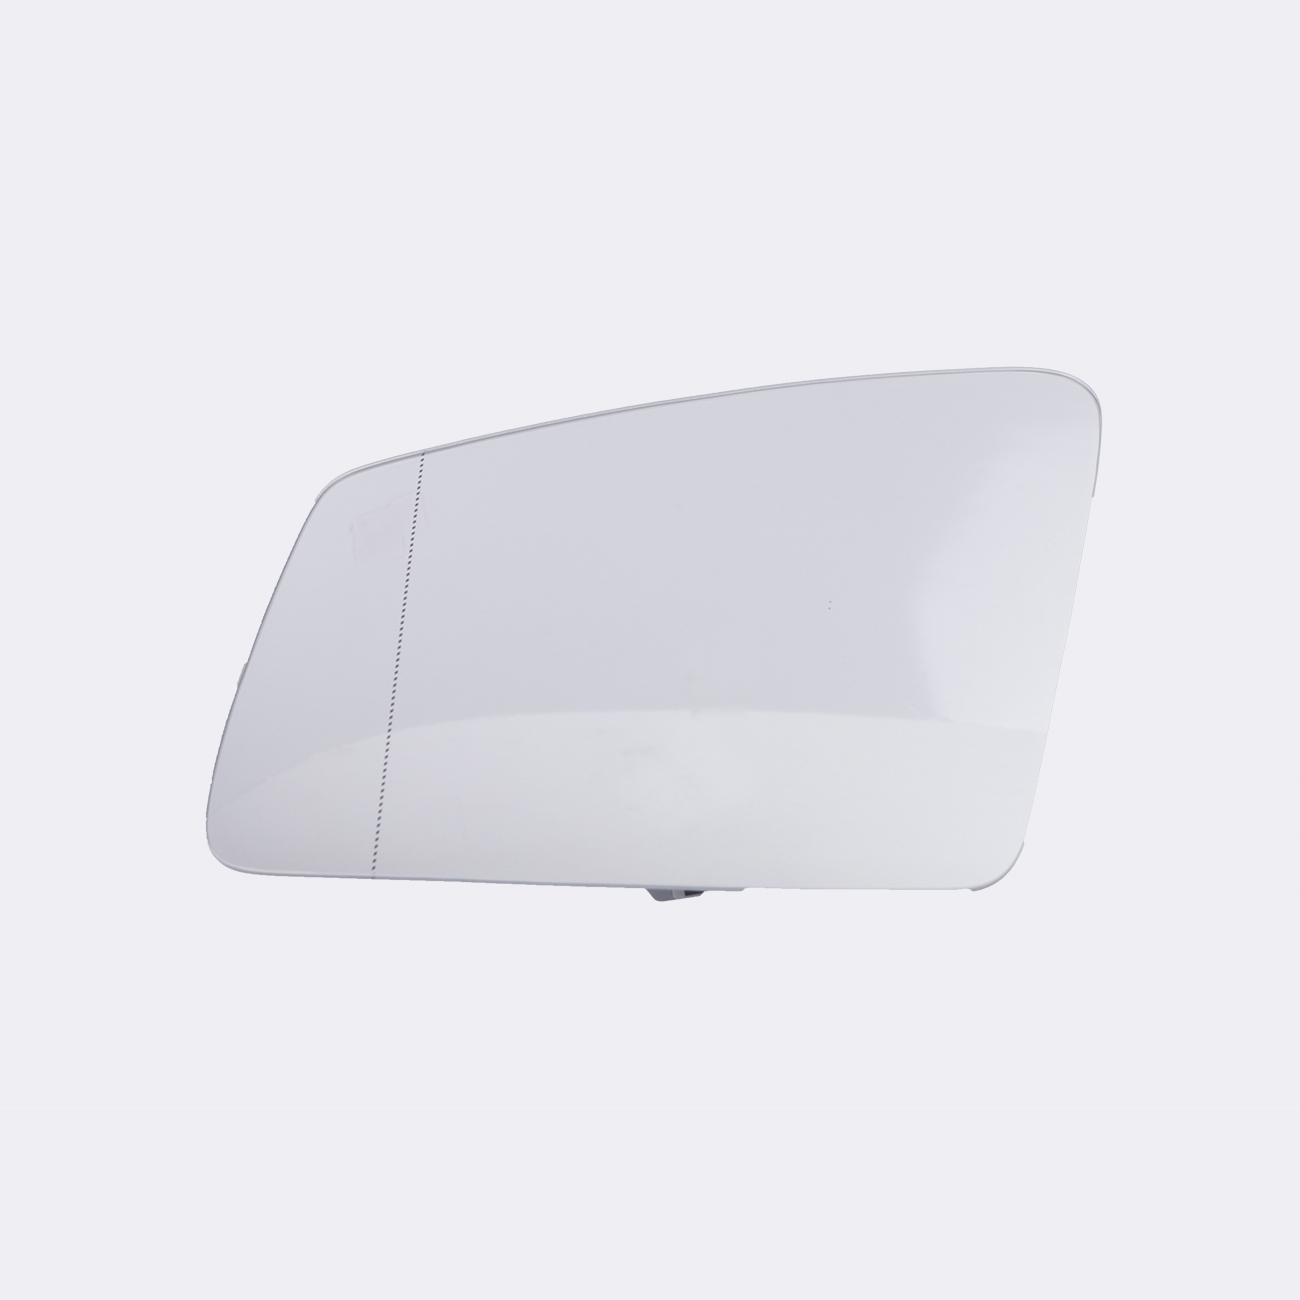 Left Side Wide Angle Rearview Heated Door Wing Mirror Glass For Mercedes Benz S C E Class W212 W204 X204 W221 // 1pcs yellow side mirror turn signal light lens for mercedes w204 w212 w221 left side